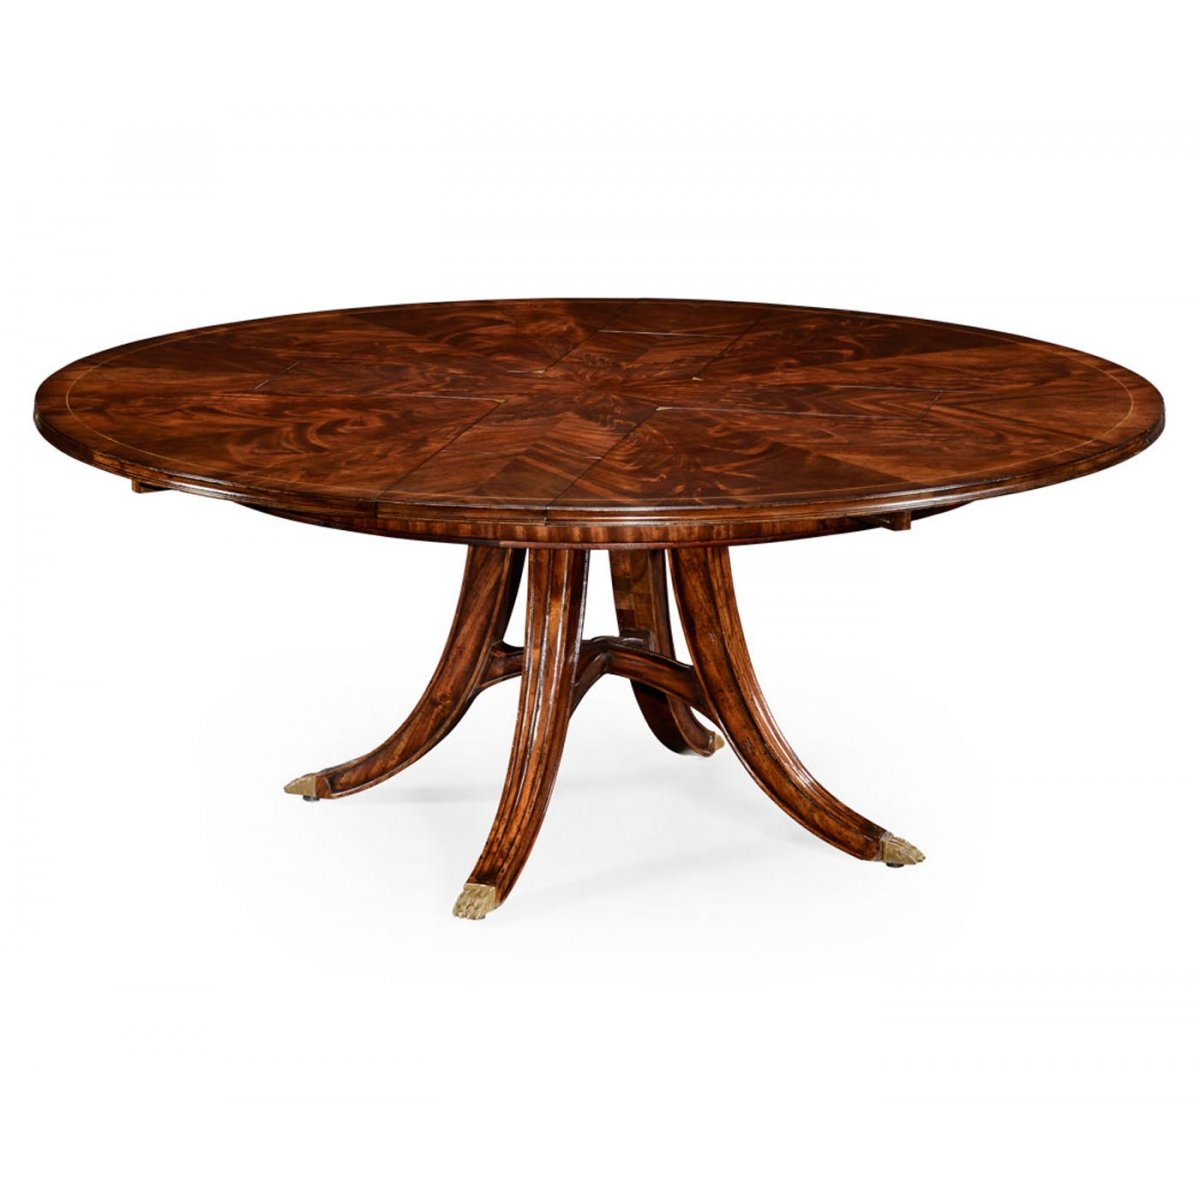 8 10 seater round extending dining table swanky interiors for 10 seater dinning table